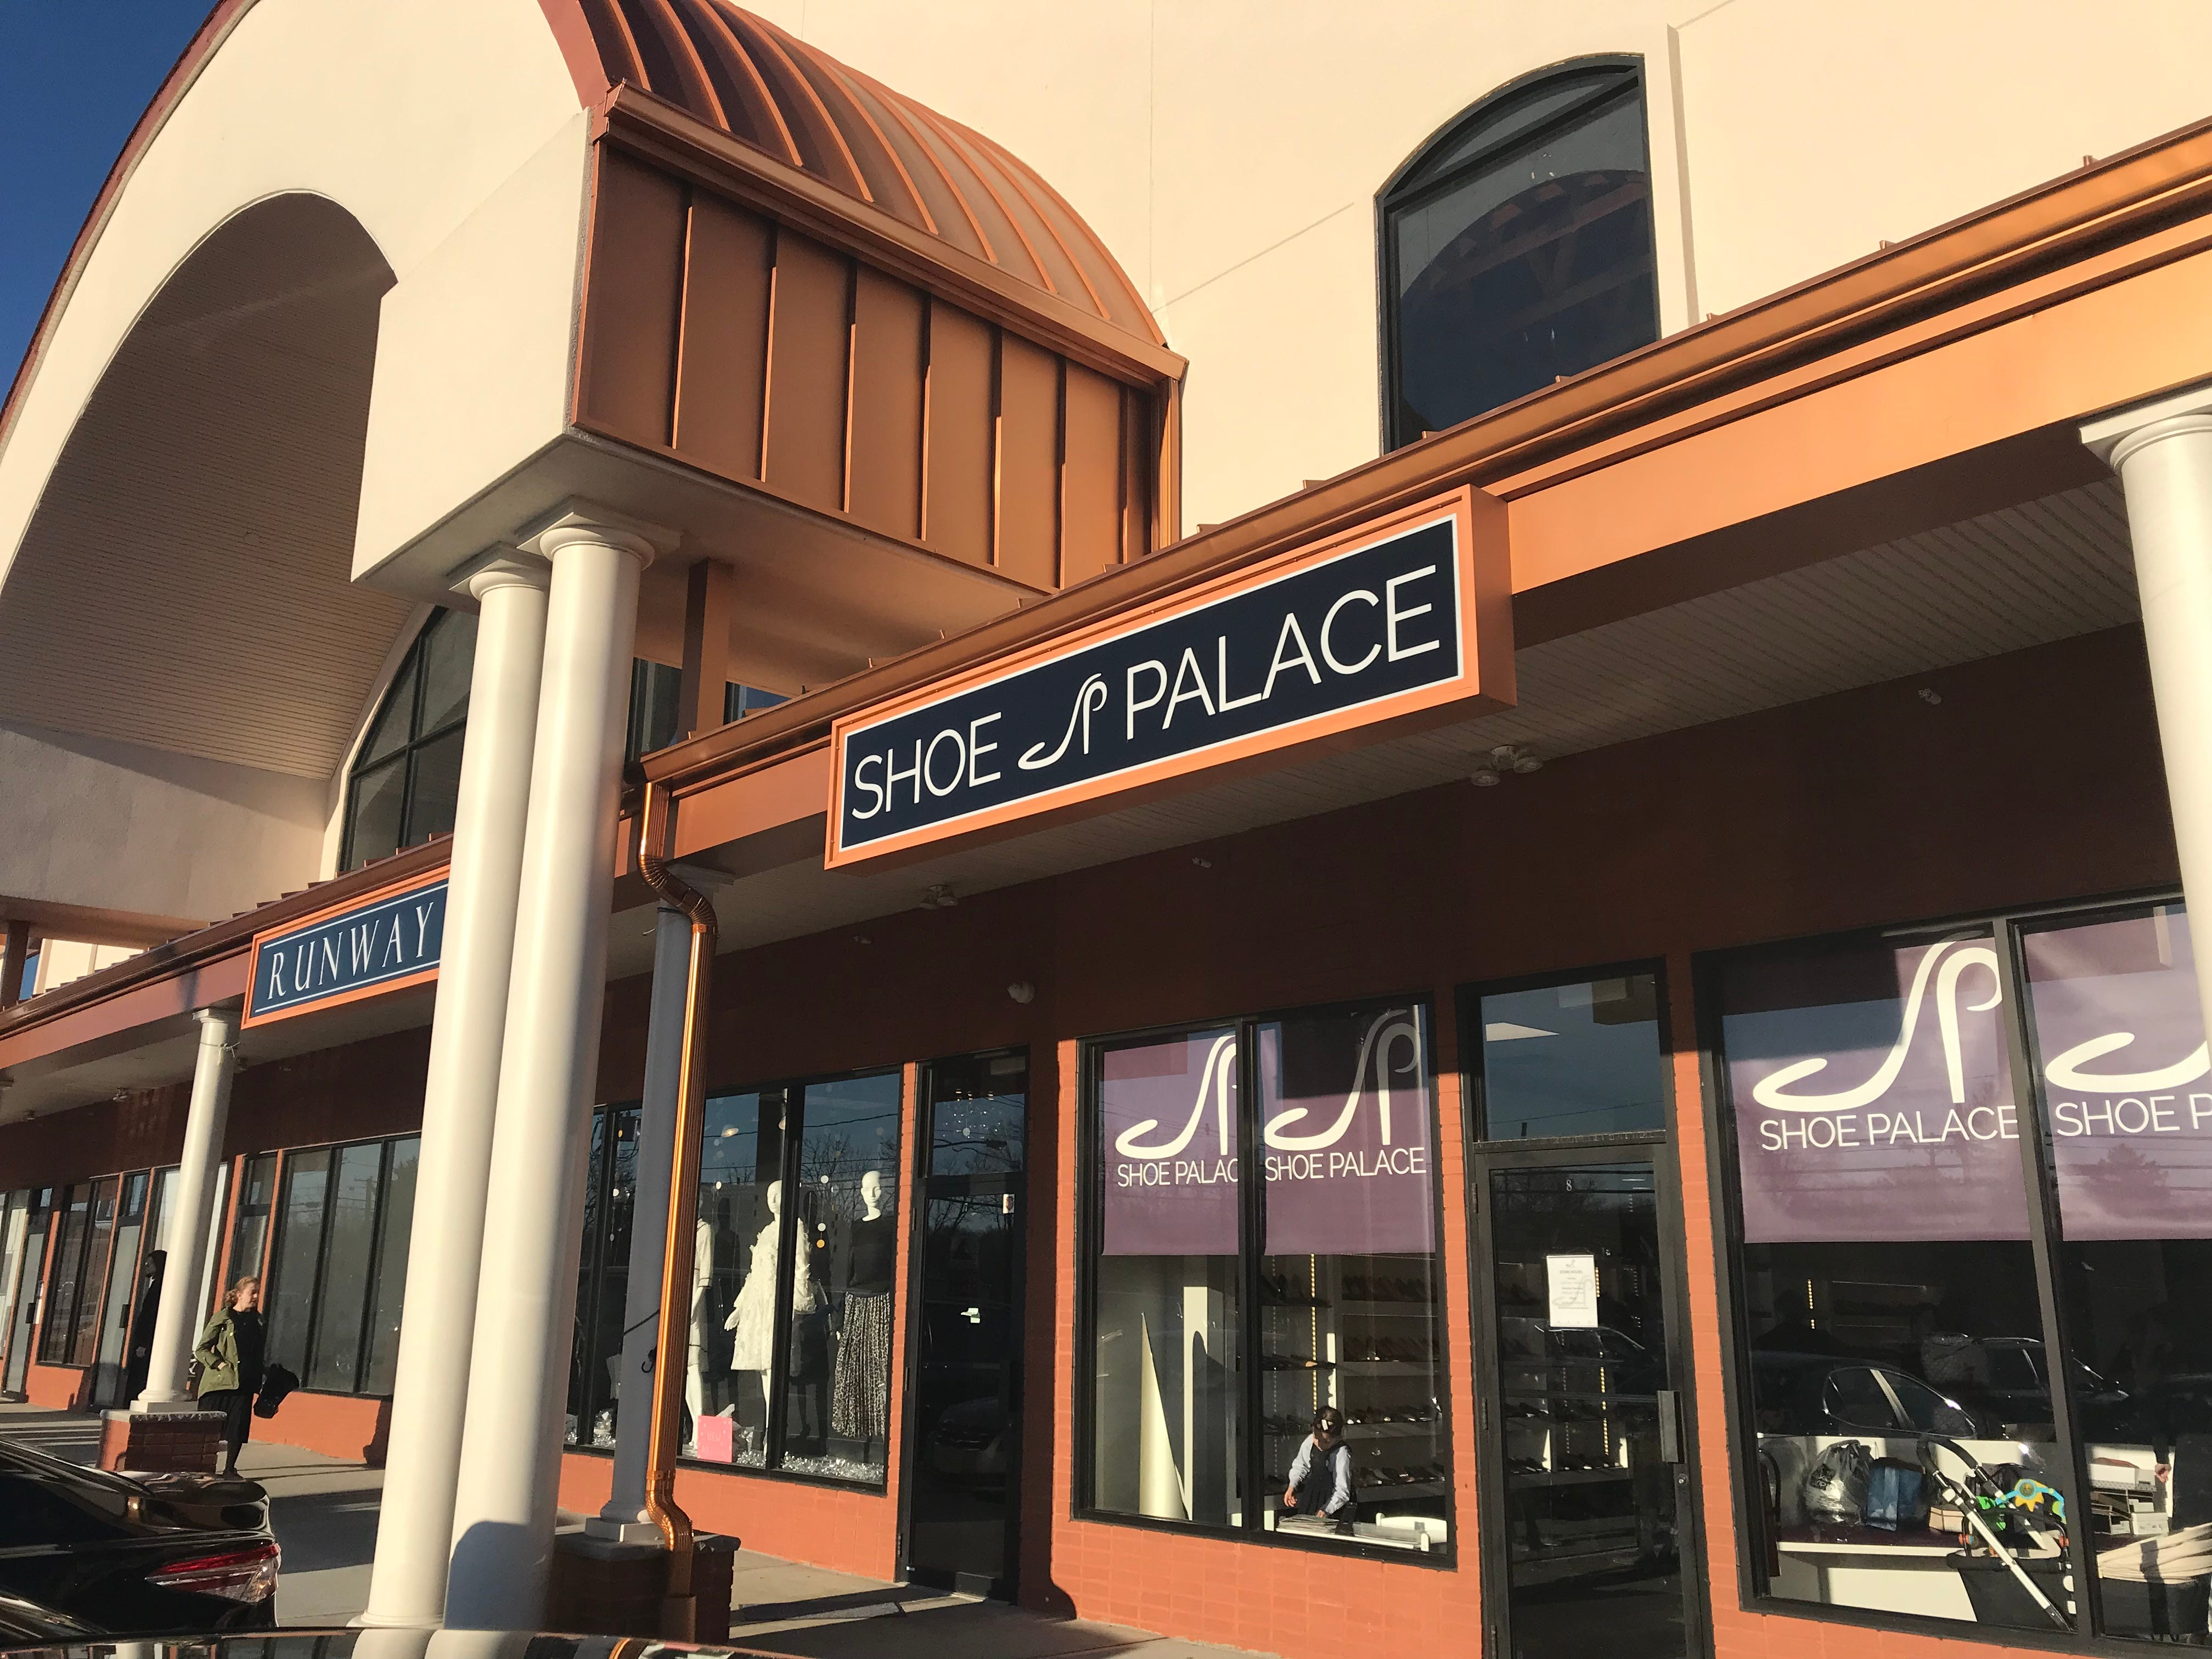 Shoe Palace on Route 9 at the Howell and Lakewood border opened nearly three years ago and is an expansion of a successful Brooklyn chain.